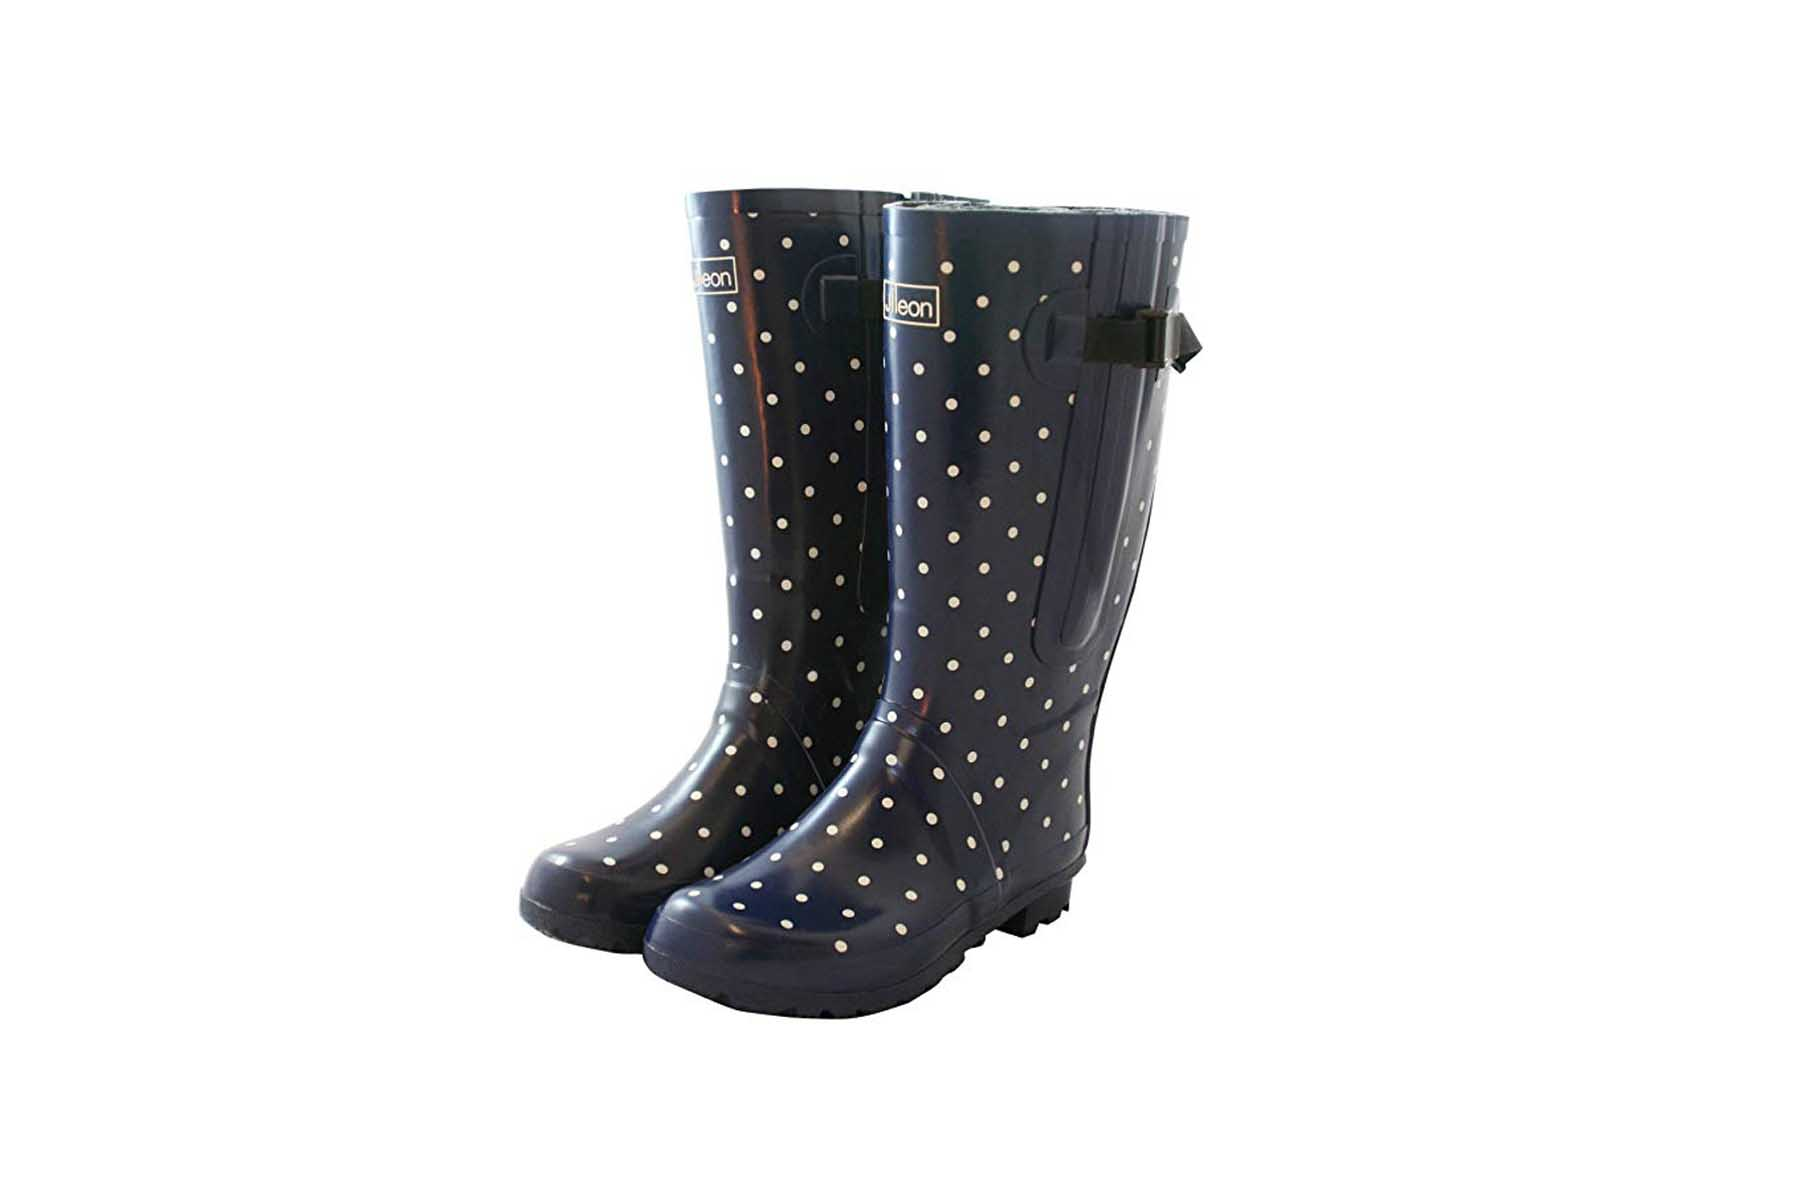 Best Rain Boots for Women With Wide Calves